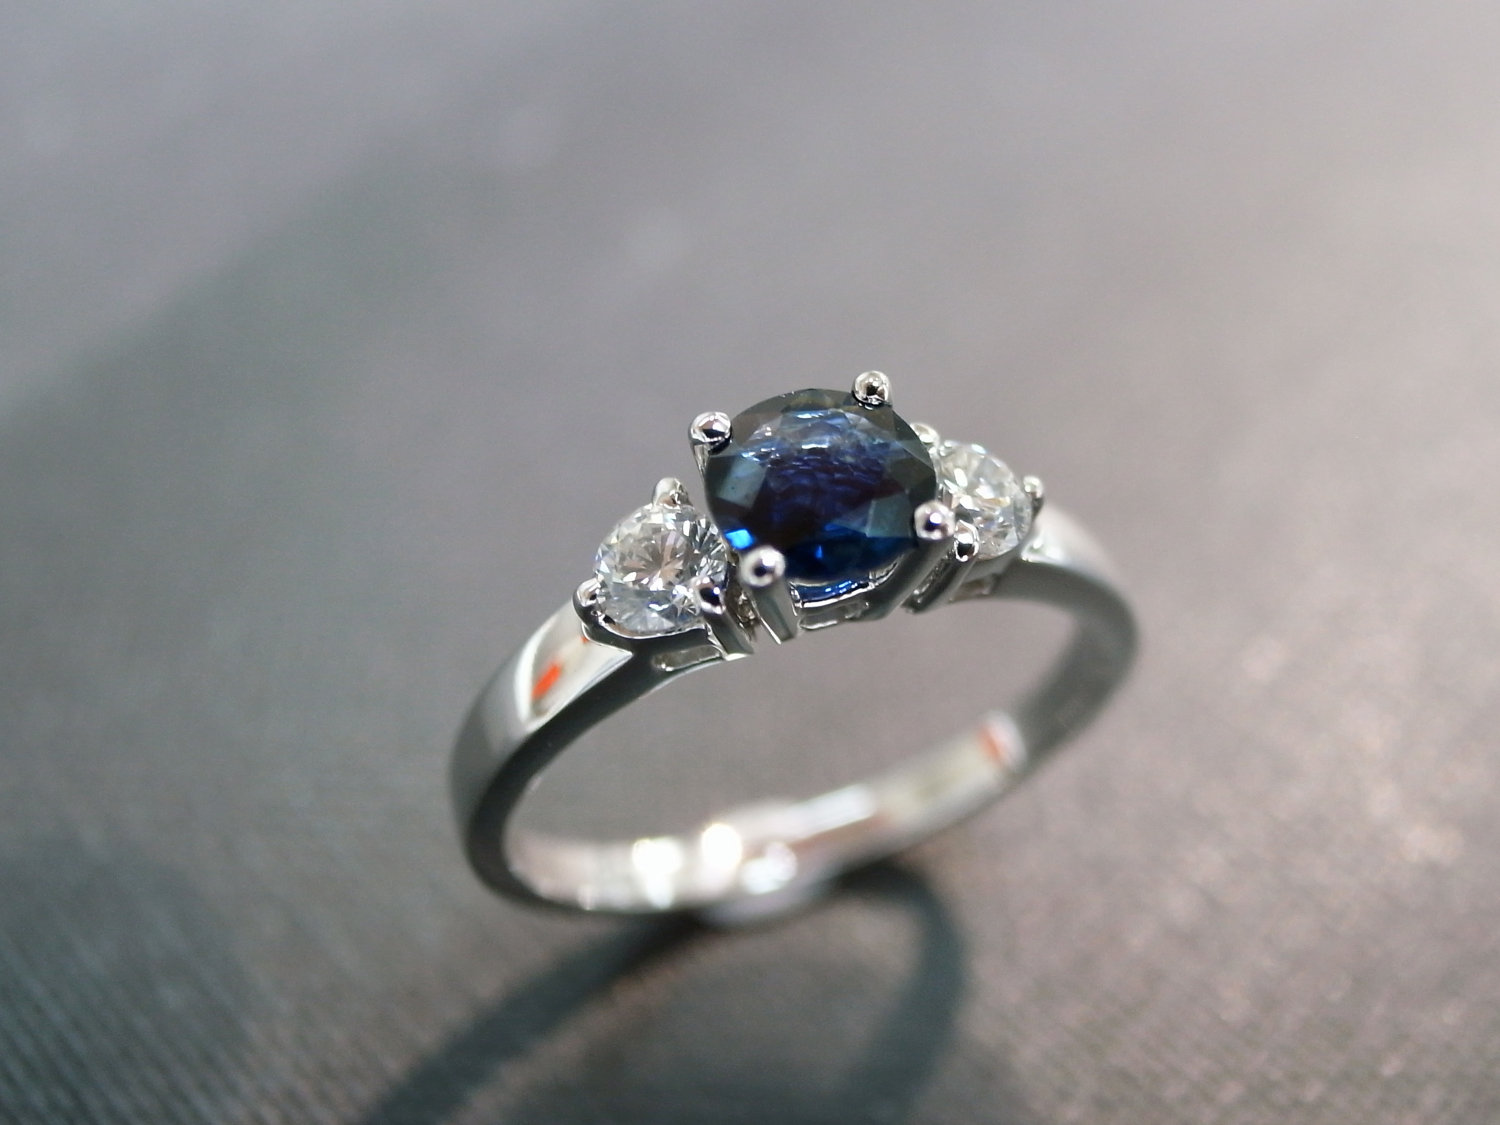 rings stones sapphire stone daussi wedding band gemstone solomon henri bands diamond brothers and ladies colored